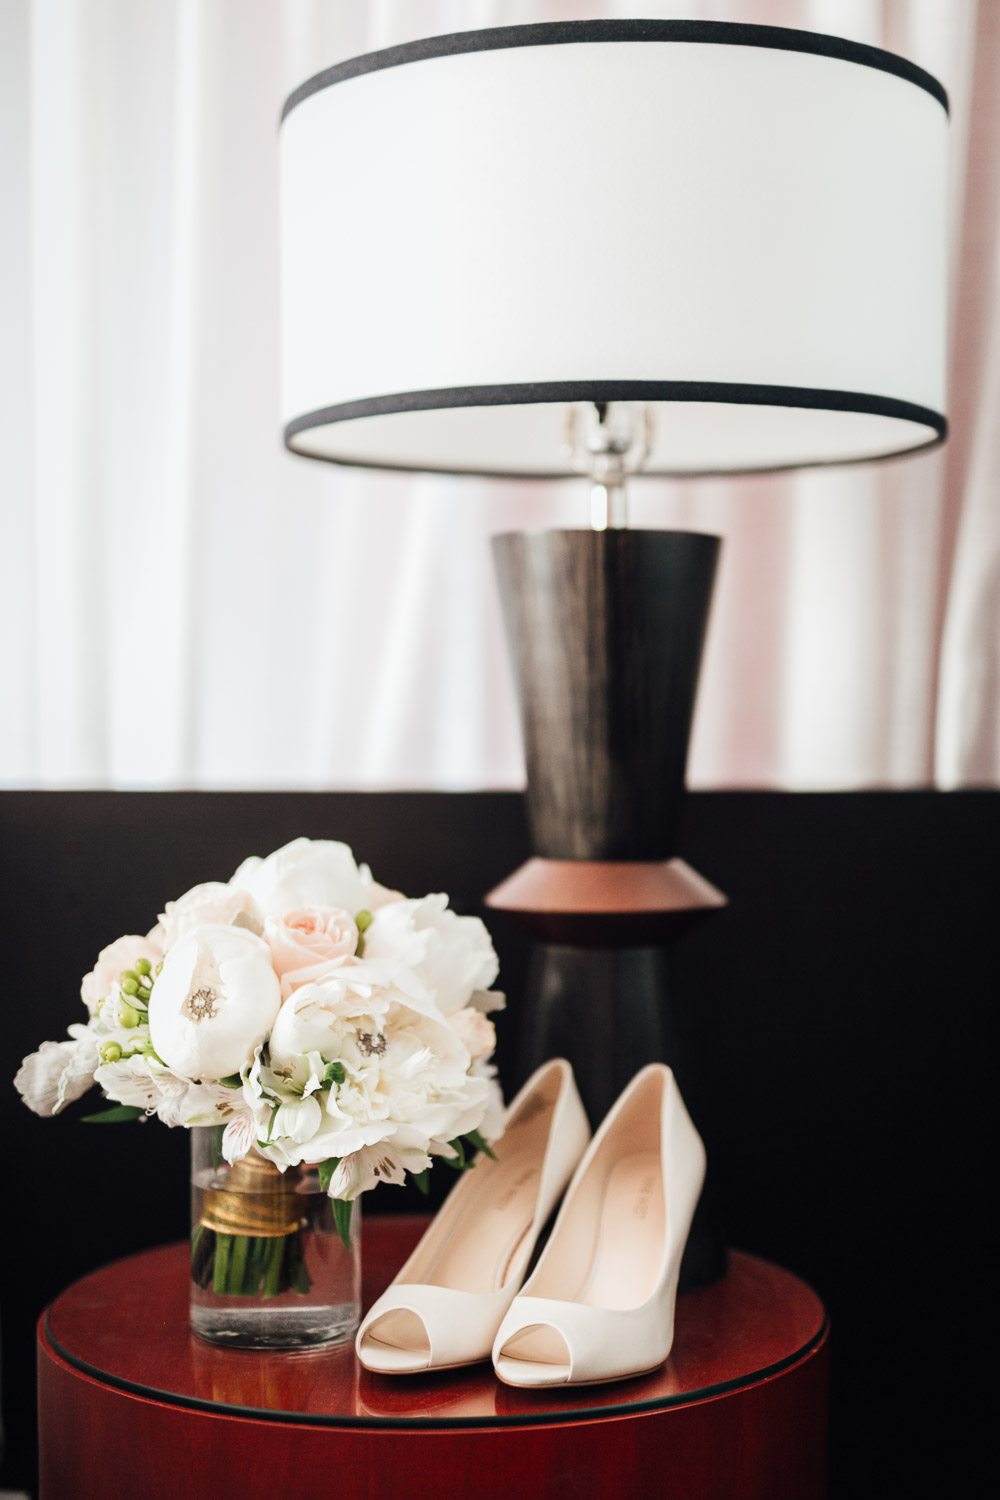 bride's bouquet and shoes getting ready in yaletown vancouver bc wedding